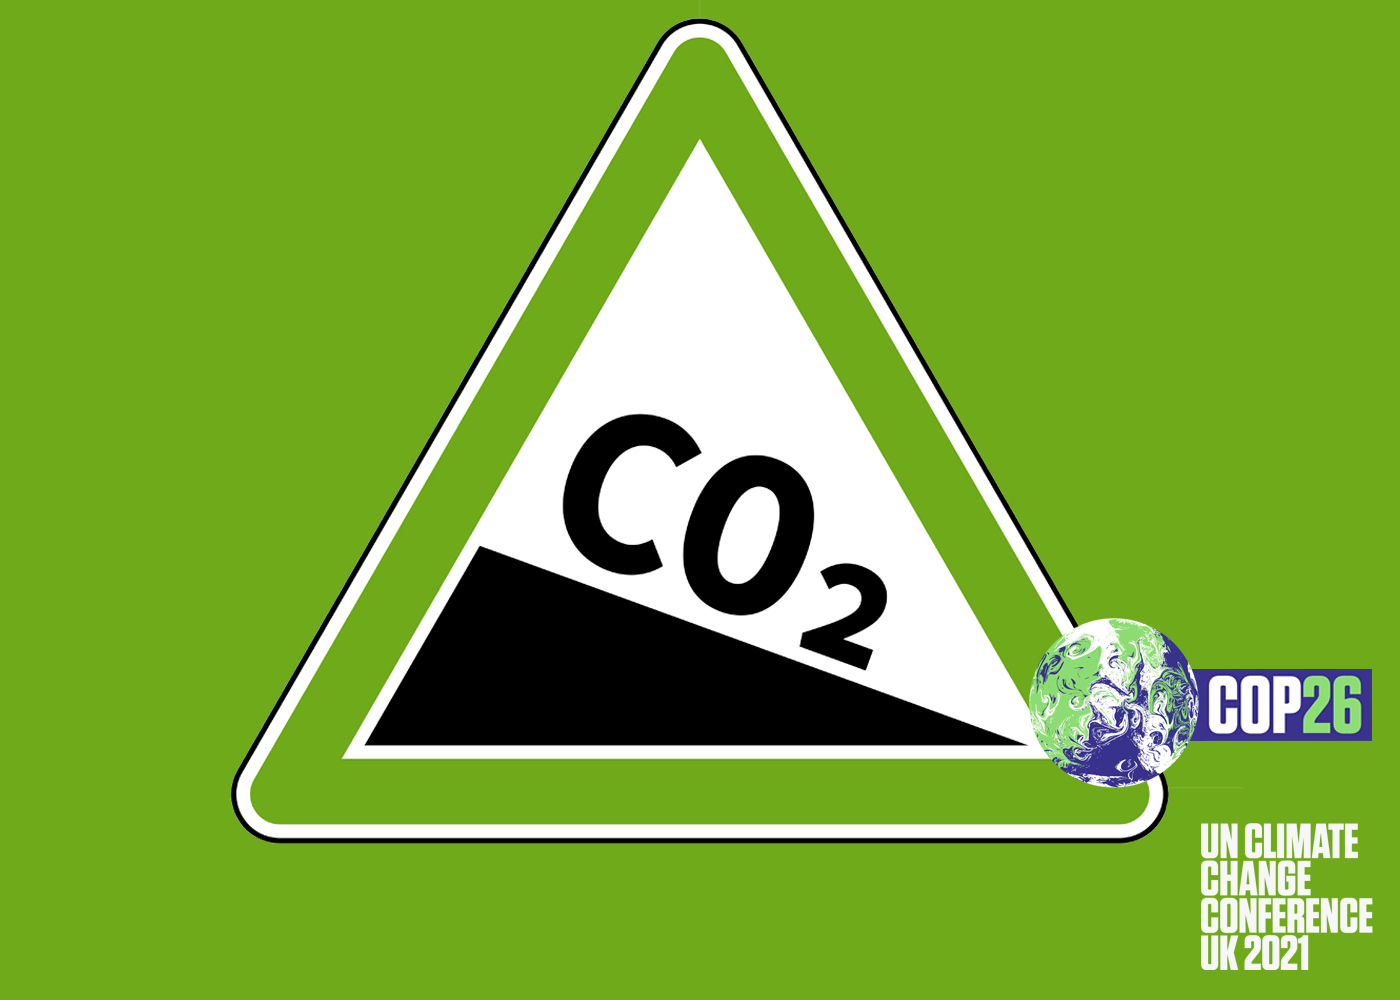 UK Government sets in law 78% CO2 reduction